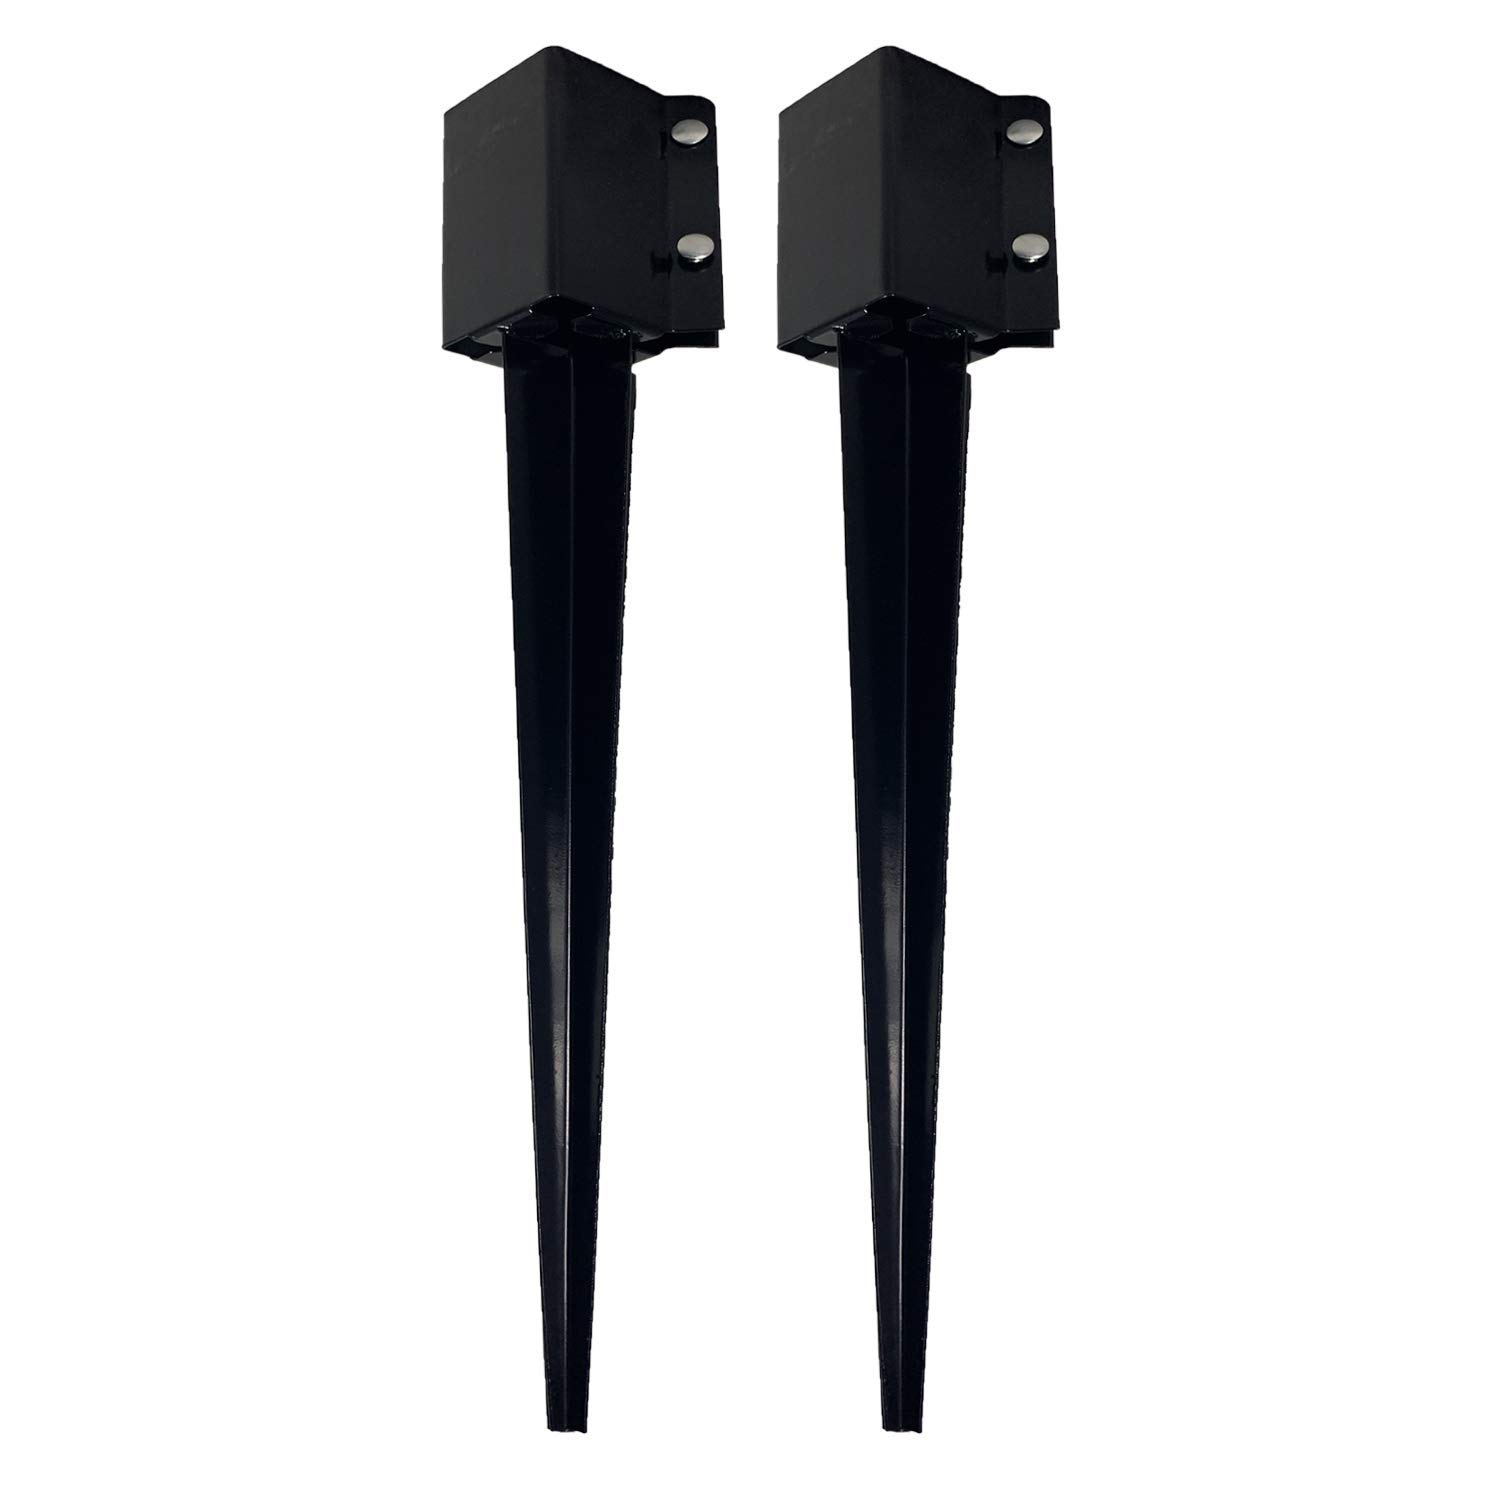 Deck Posts Ideal for securing Mailbox Posts Gazebo Posts 3.25 x 3.25 Inches Wide 1 Pack Ashman Fence Post Anchor 30 Inches Tall Street Lamps and More